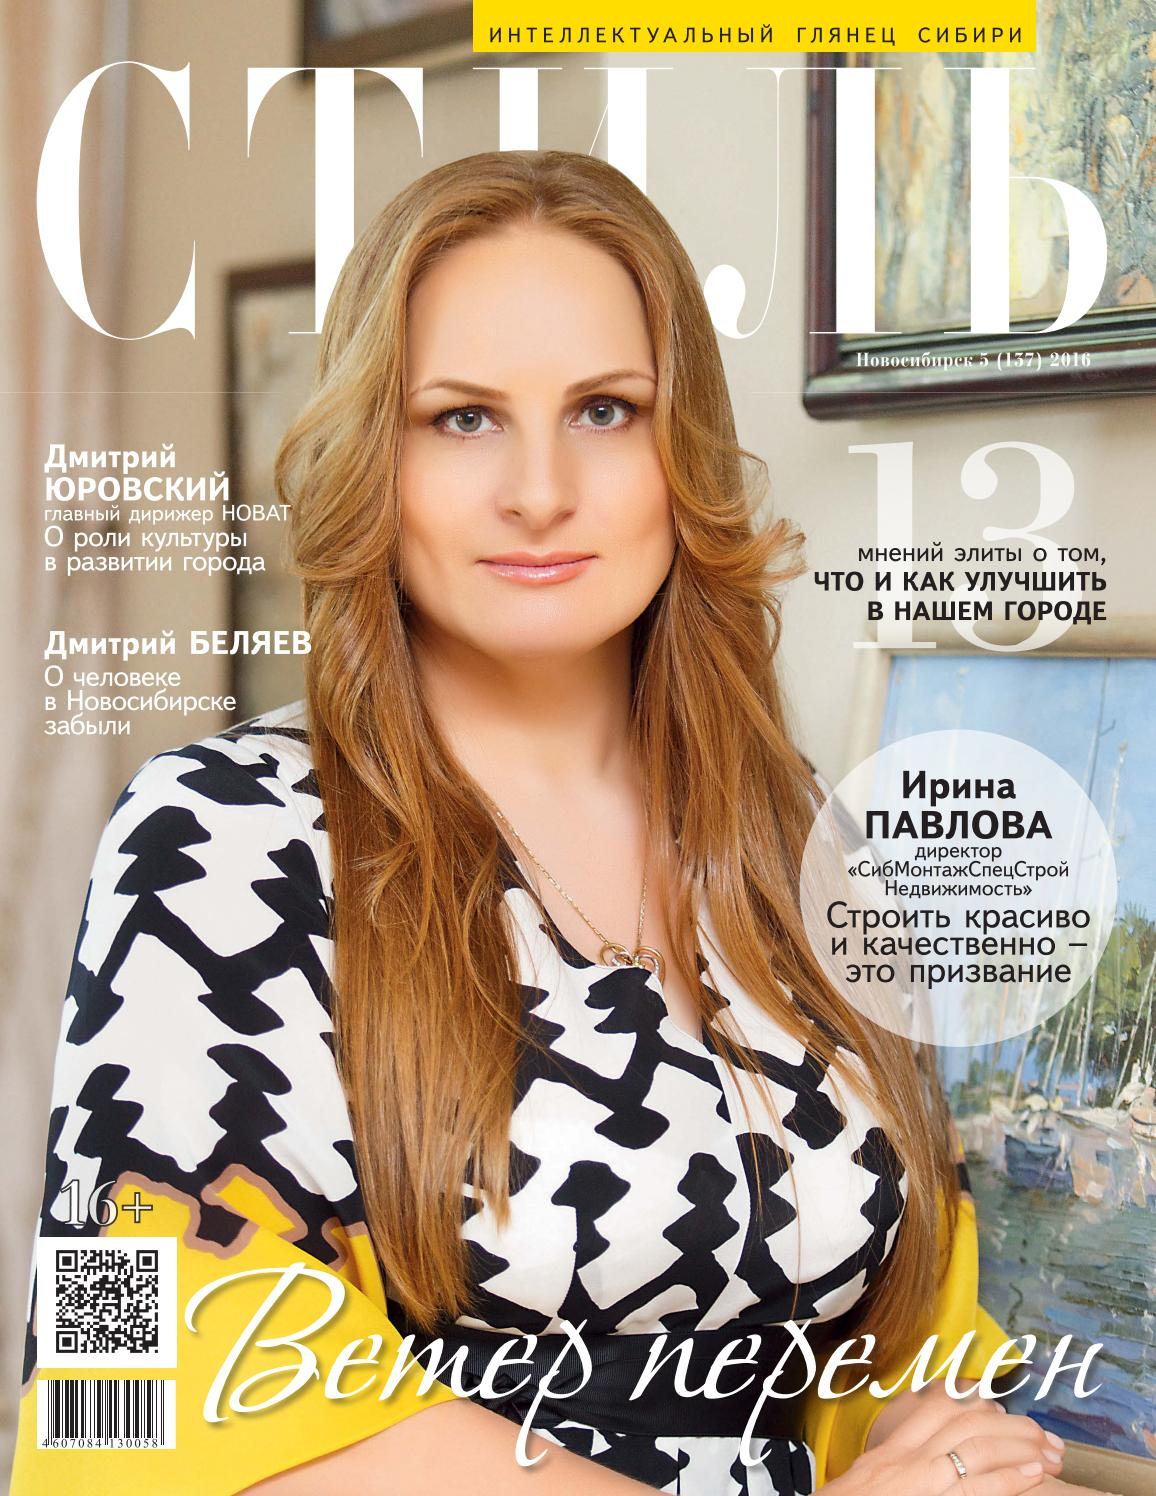 Стиль 2016 (137) 5 by LEADERS today - issuu d59d4096962